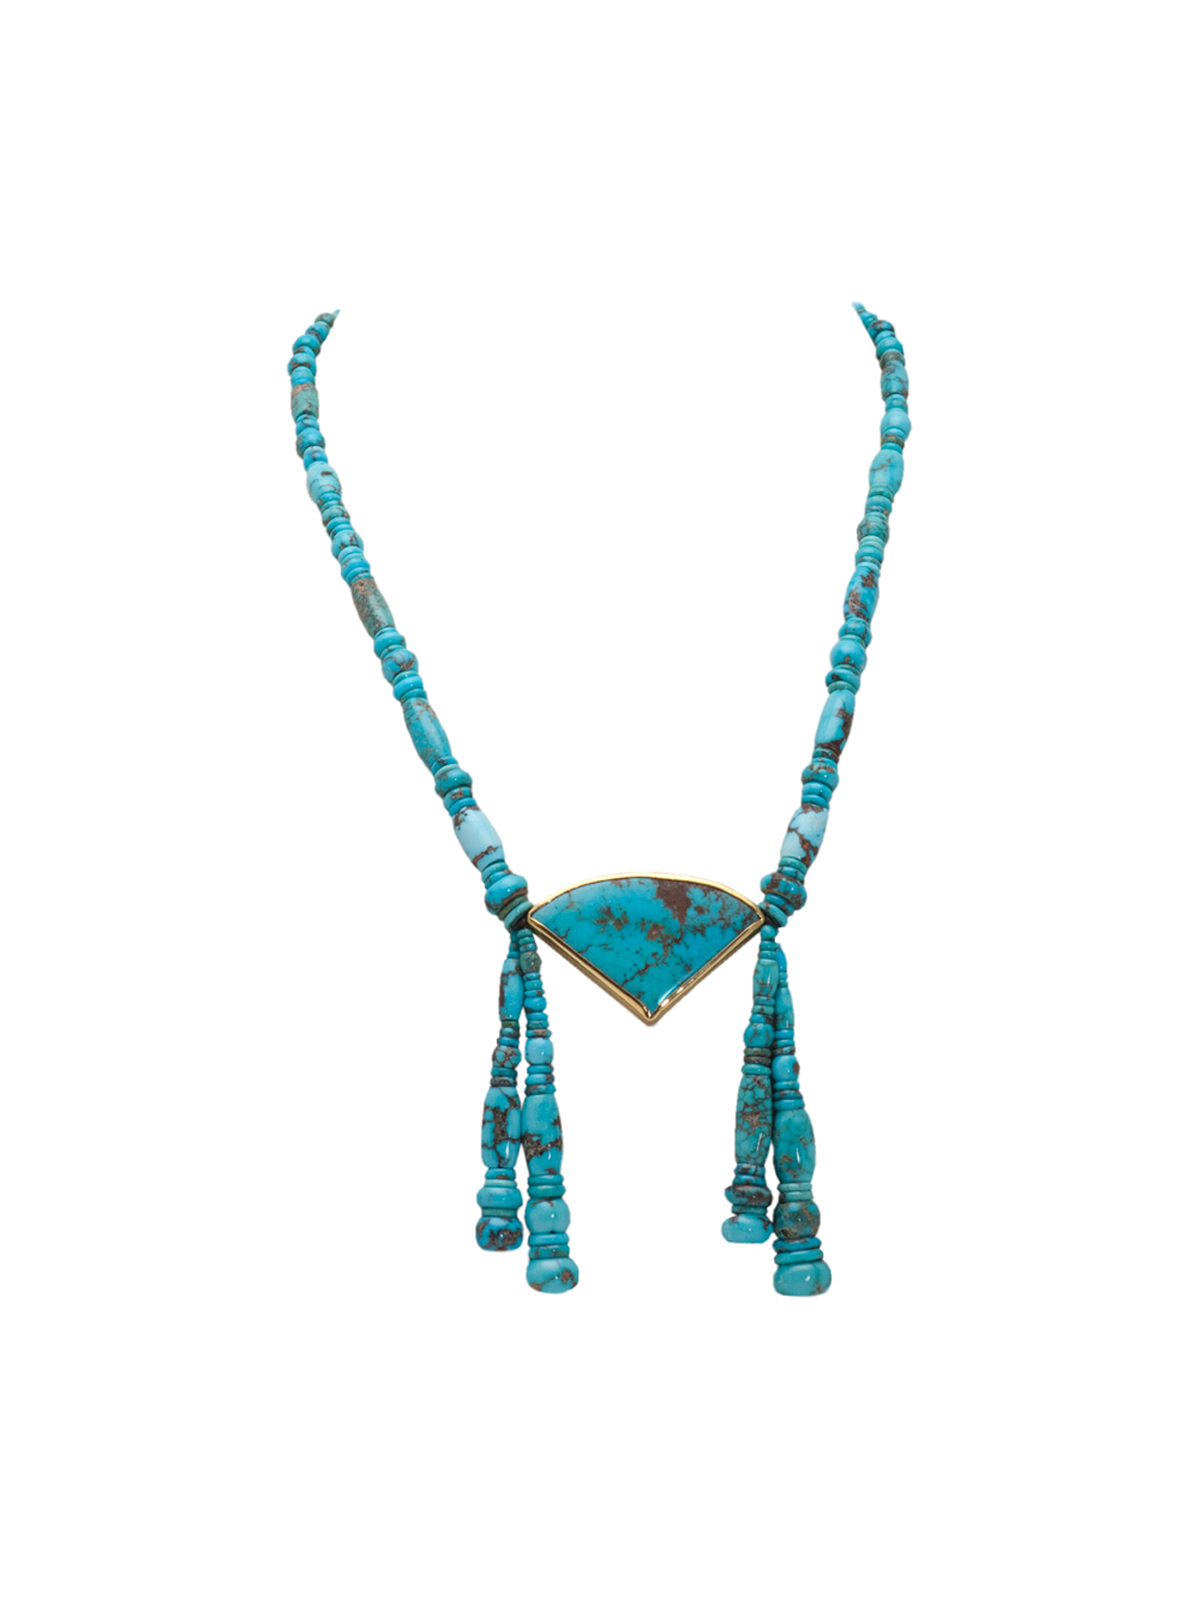 Godber burnham turquoise necklace with 22k gold godber burnham turquoise necklace aloadofball Choice Image